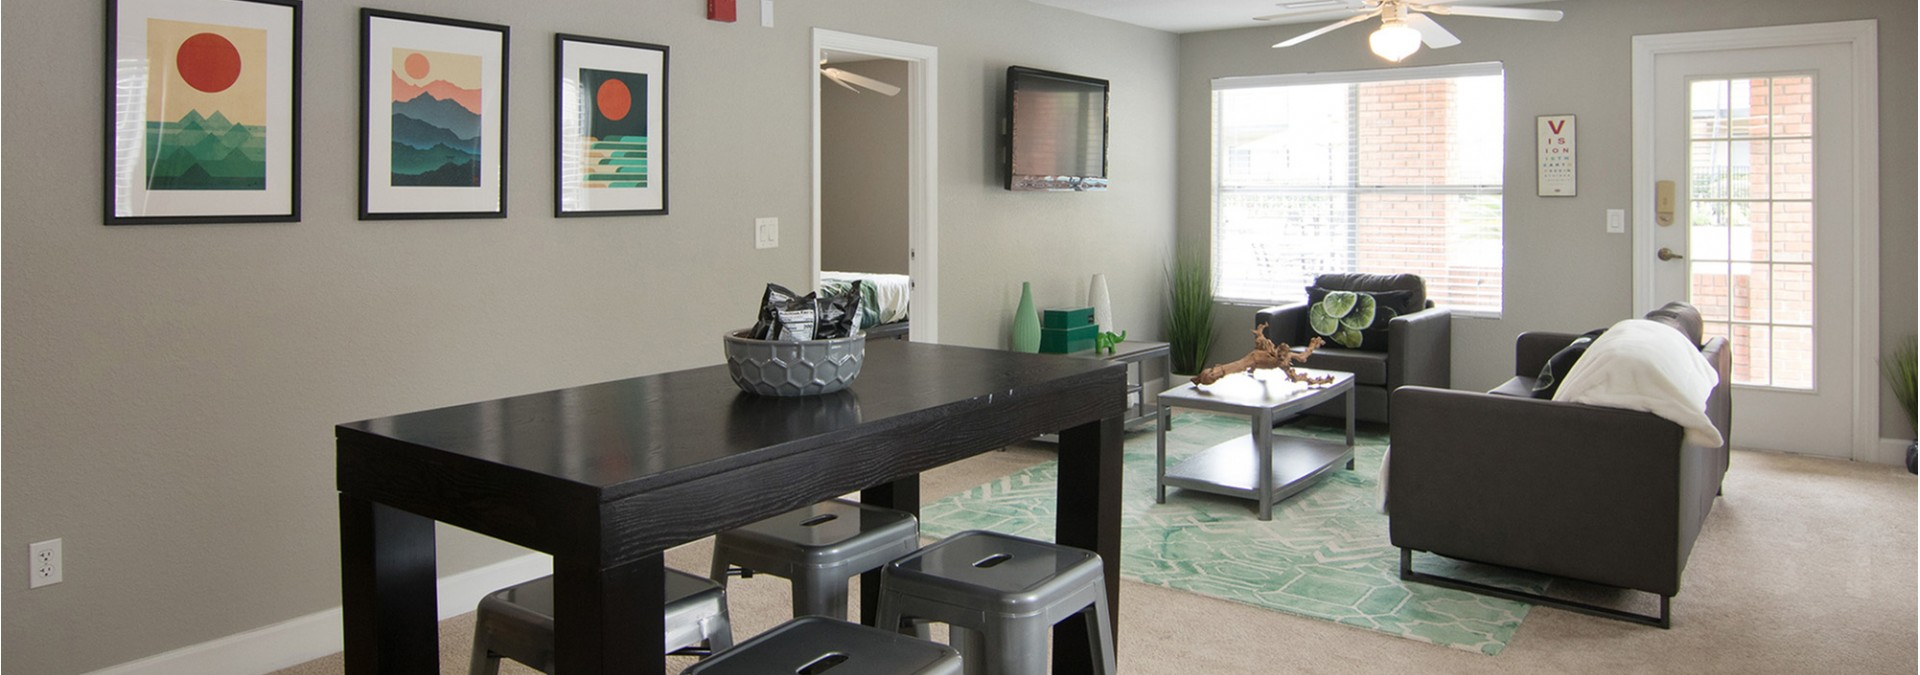 | Student Apartments Near FSU | The Social 2700 Student Spaces